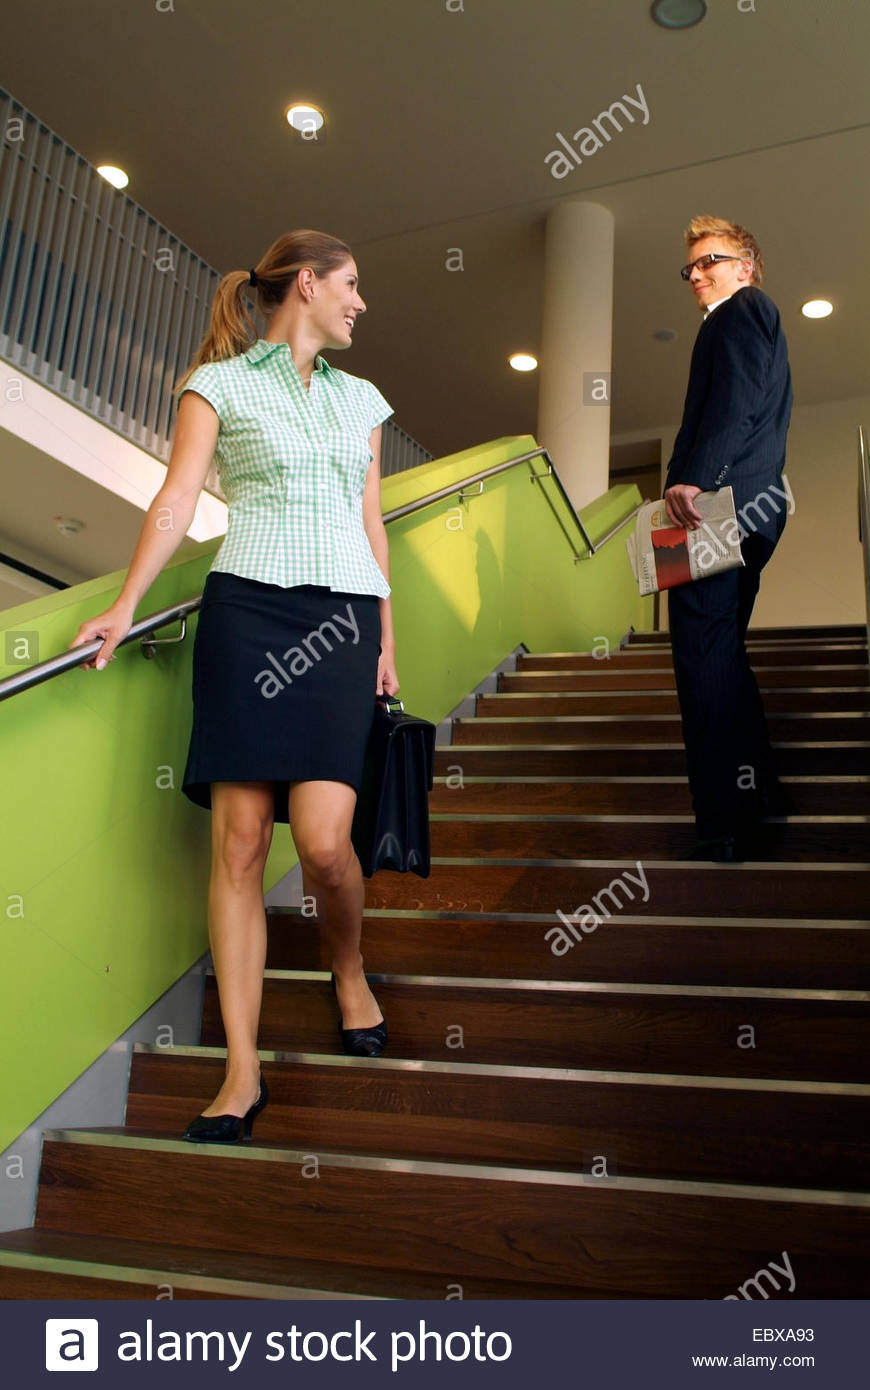 man coming across a woman on stairs - Stock Image